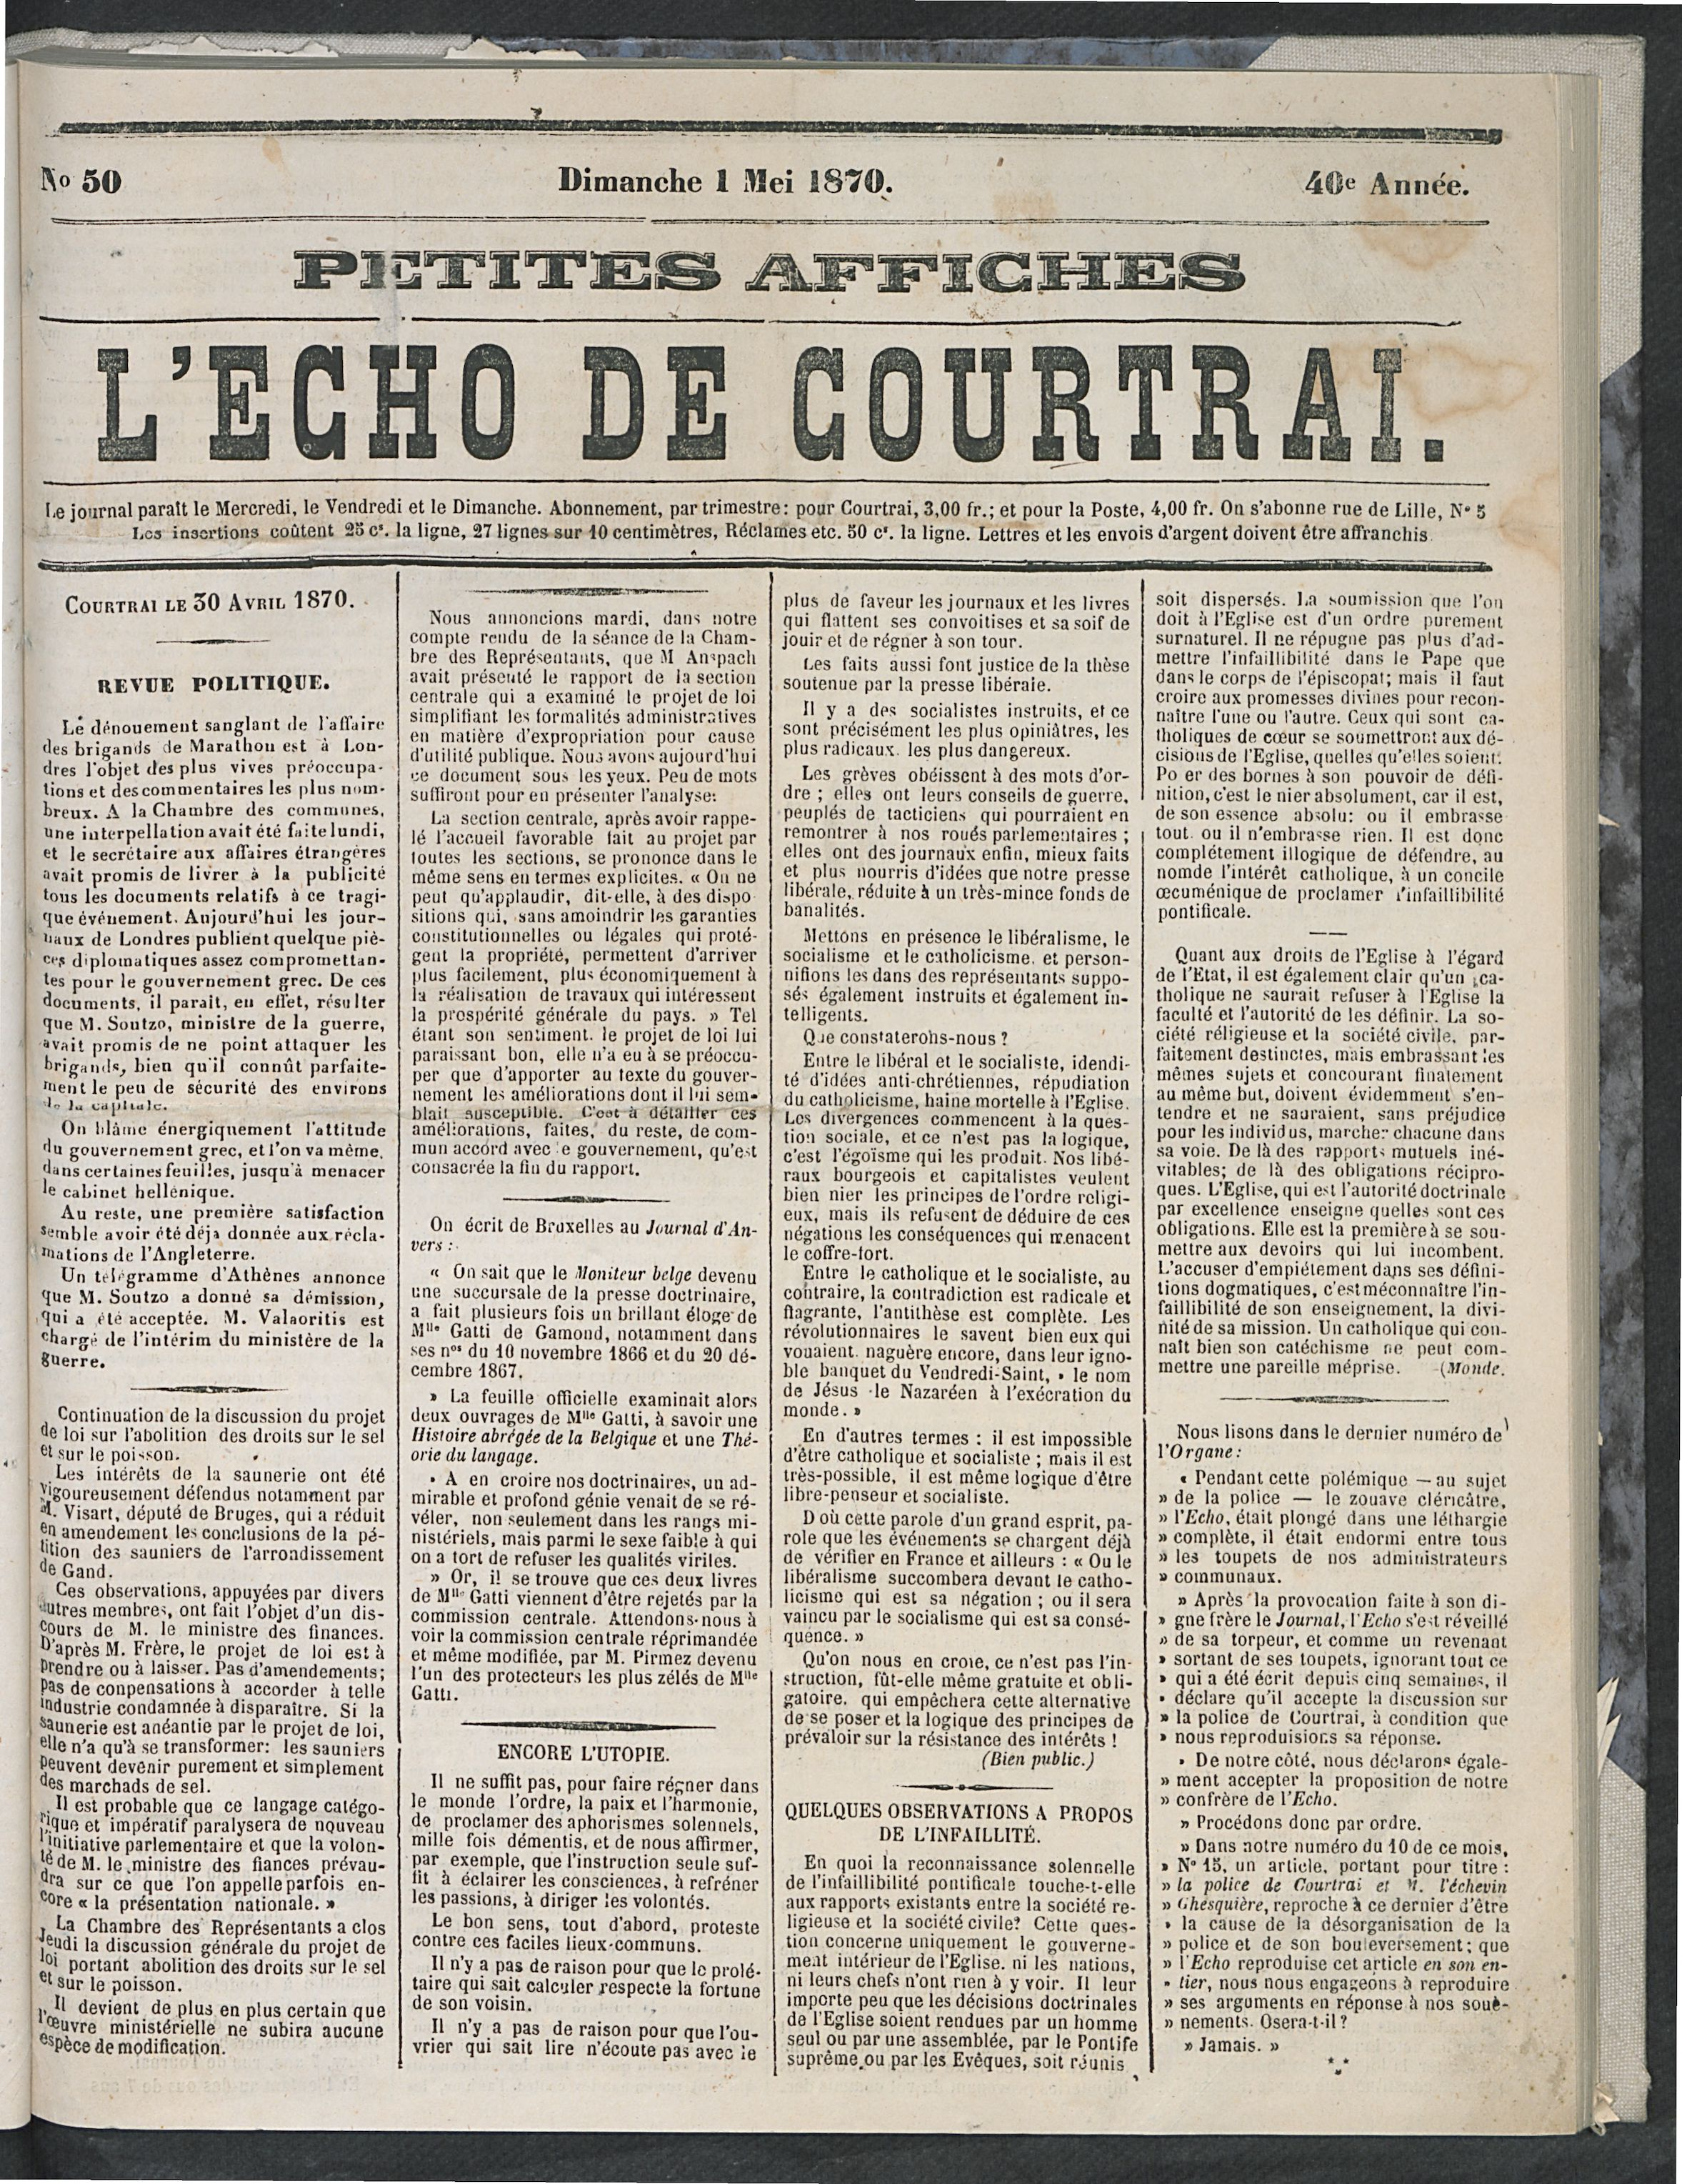 L'echo De Courtrai 1870-05-01 p1